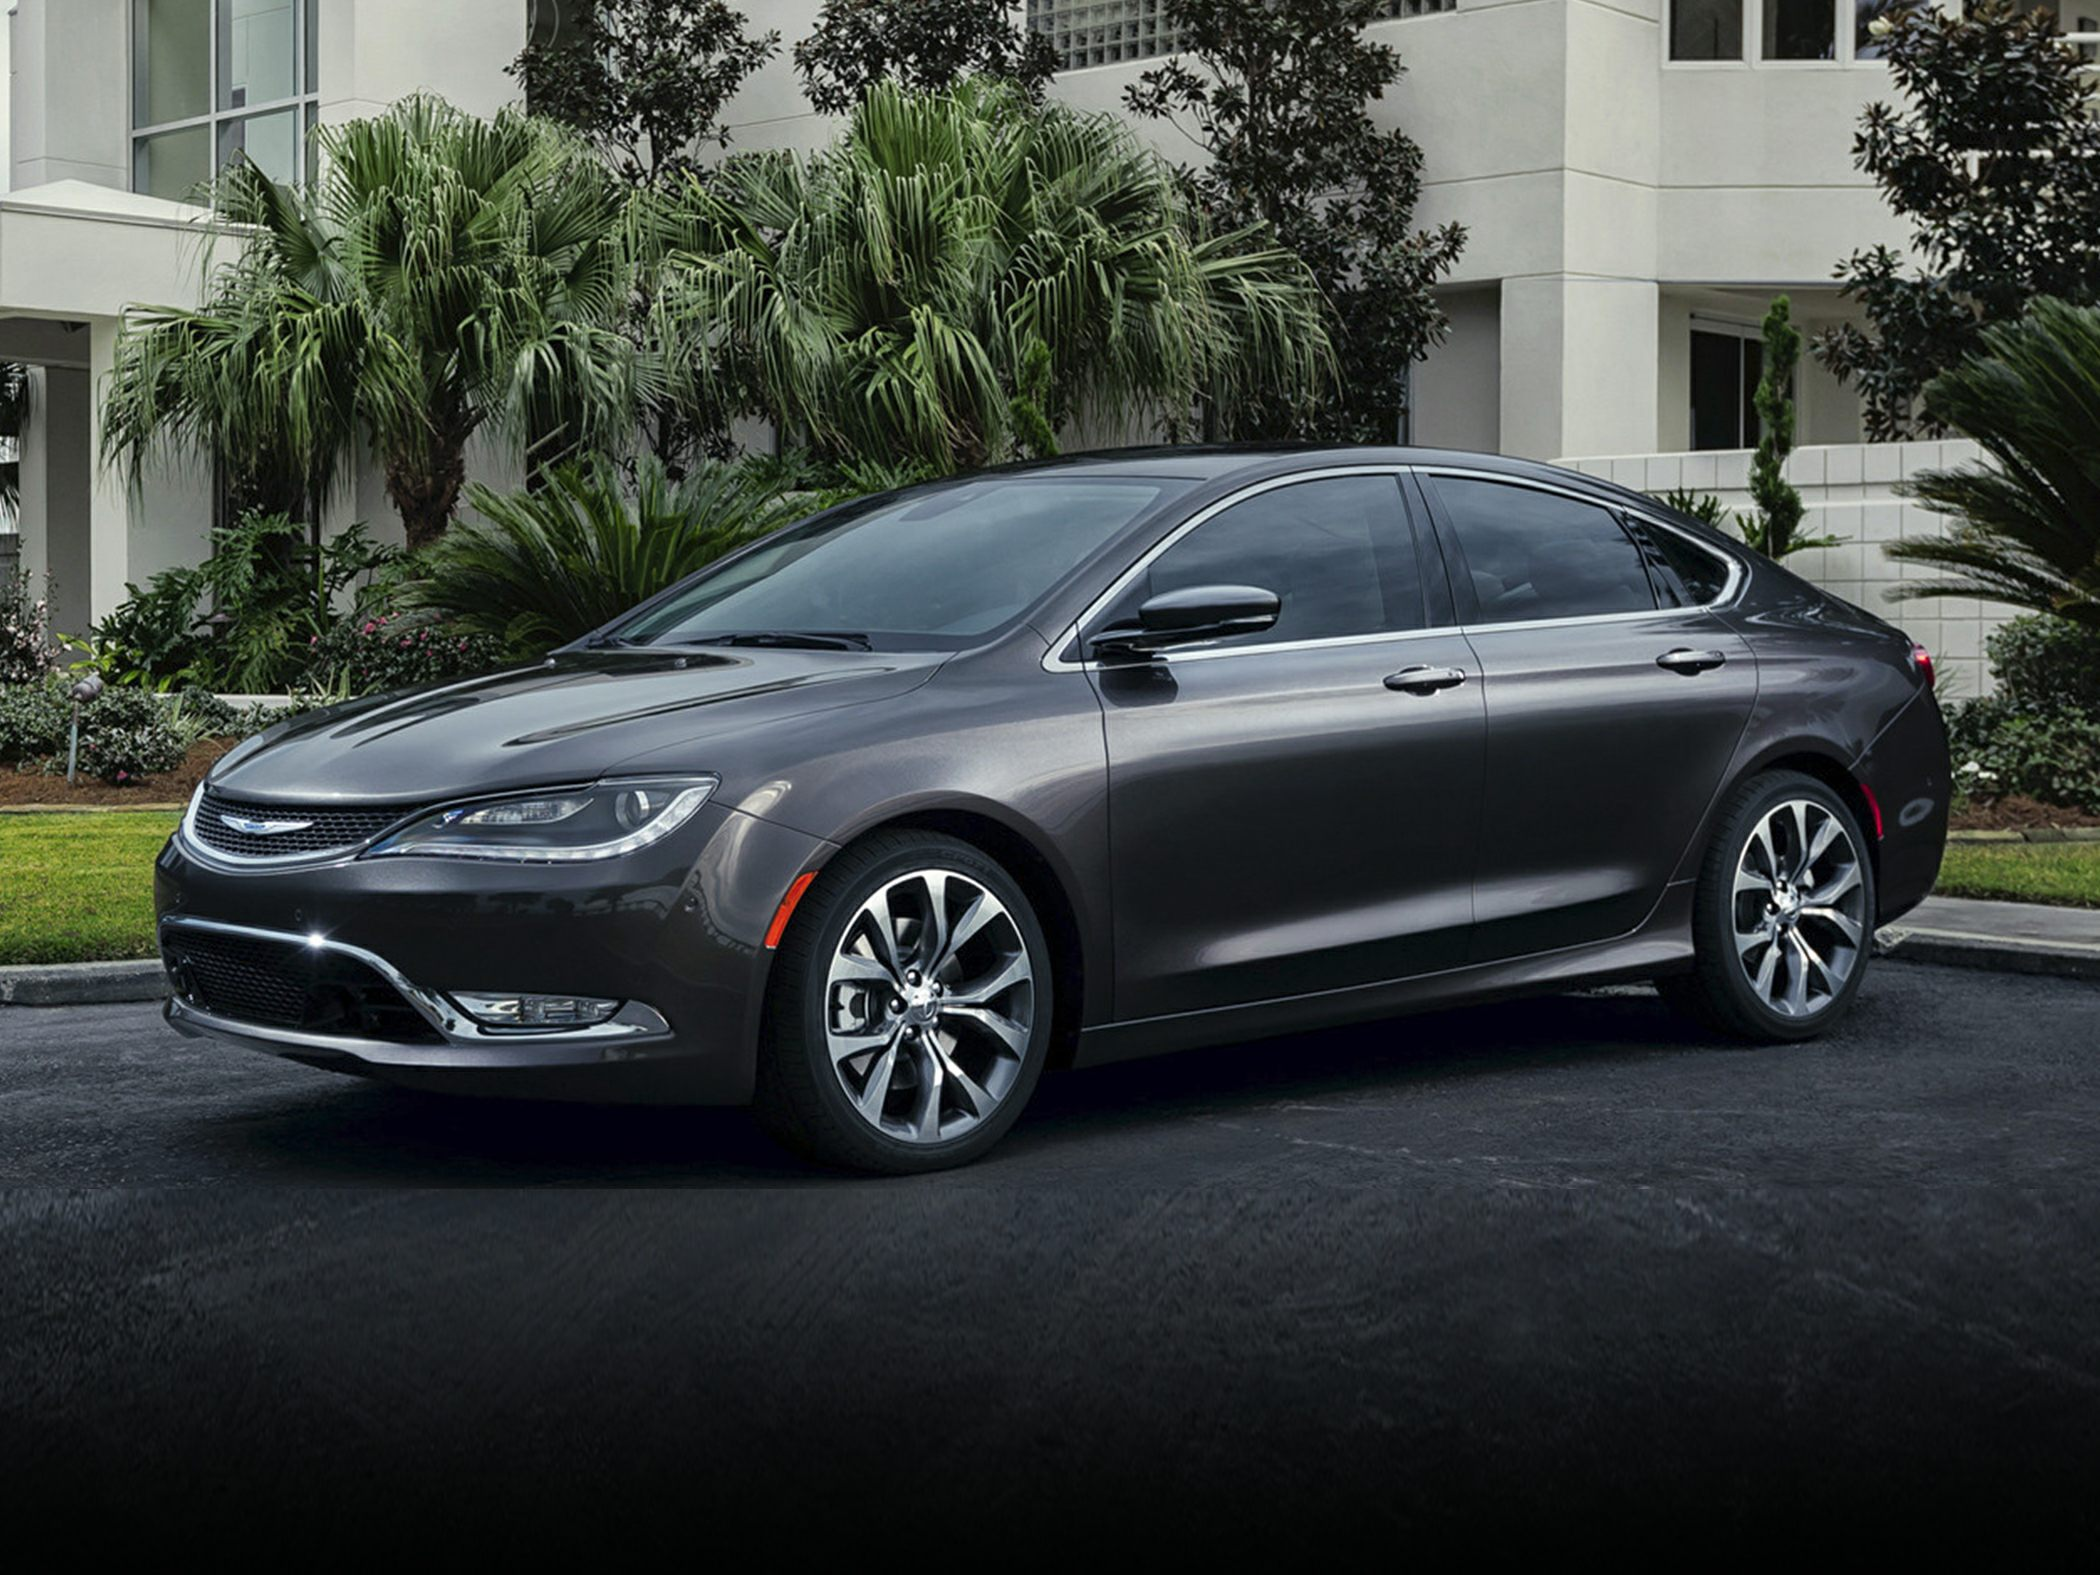 2016 Chrysler 200 Styles Features Highlights